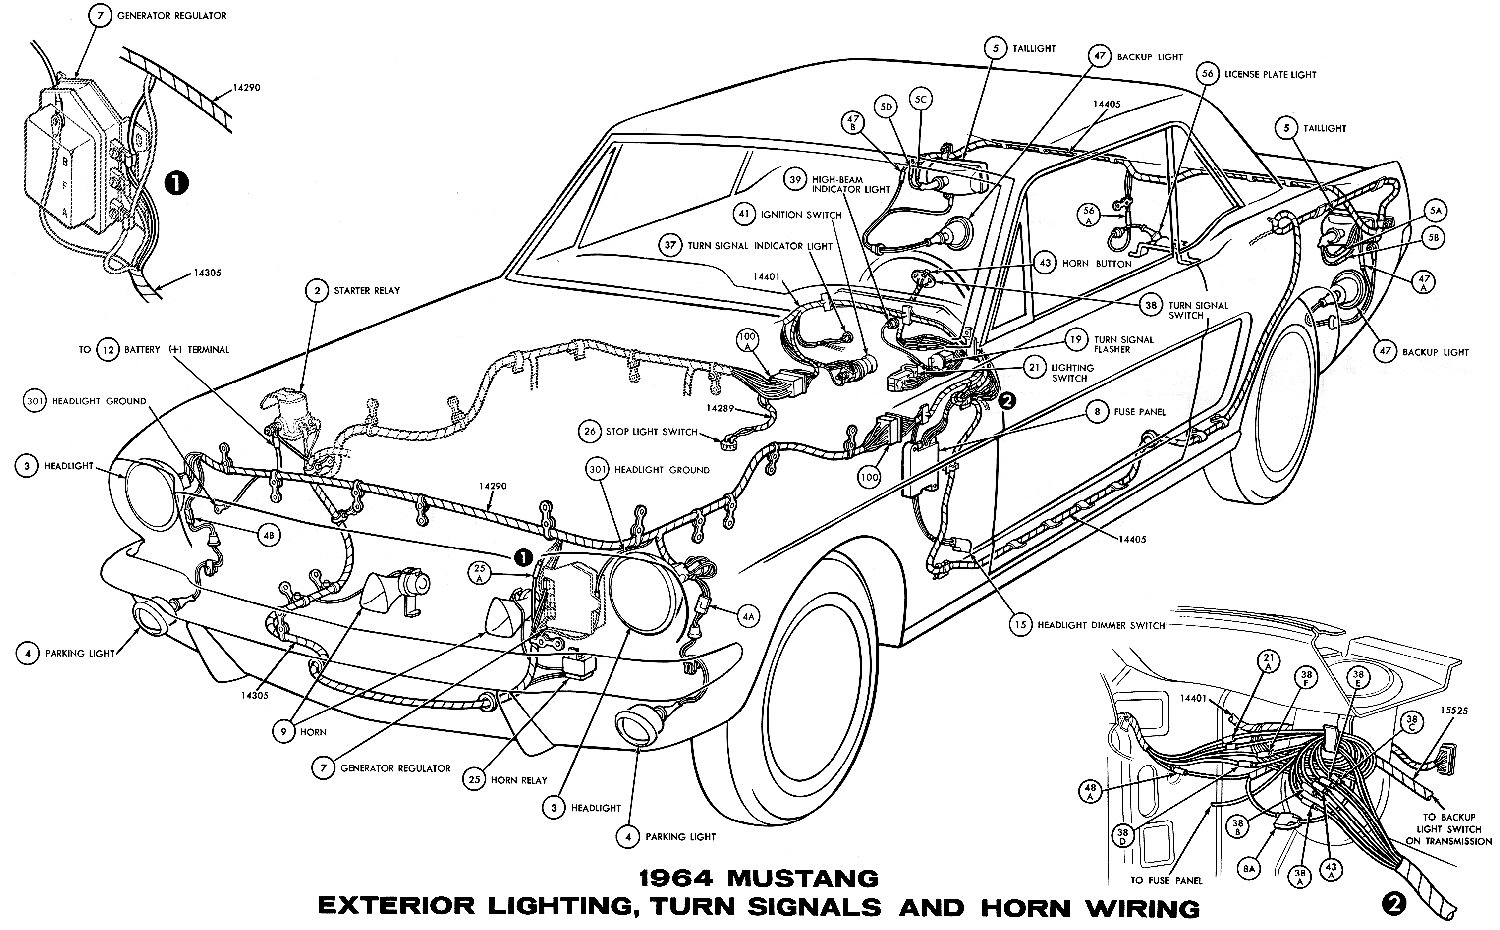 1964h 1964 mustang wiring diagrams average joe restoration 67 mustang wiring diagram at alyssarenee.co